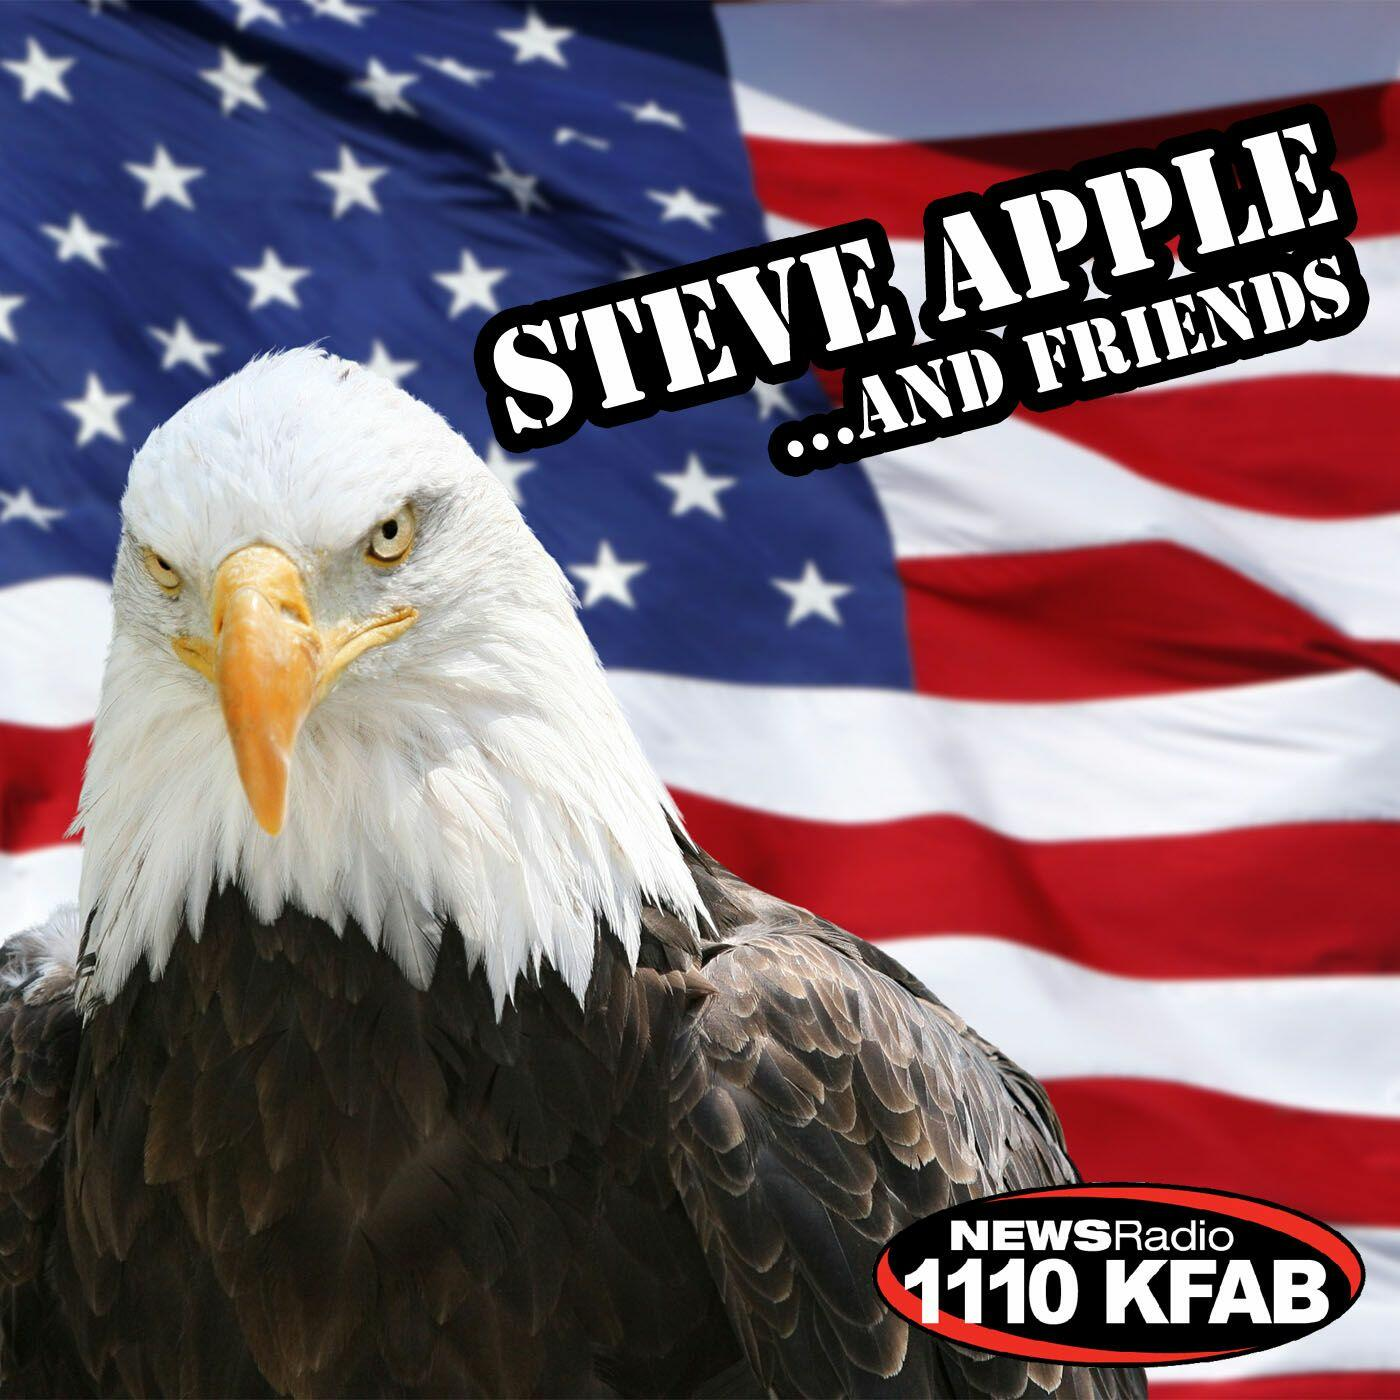 Steve Apple and Friends